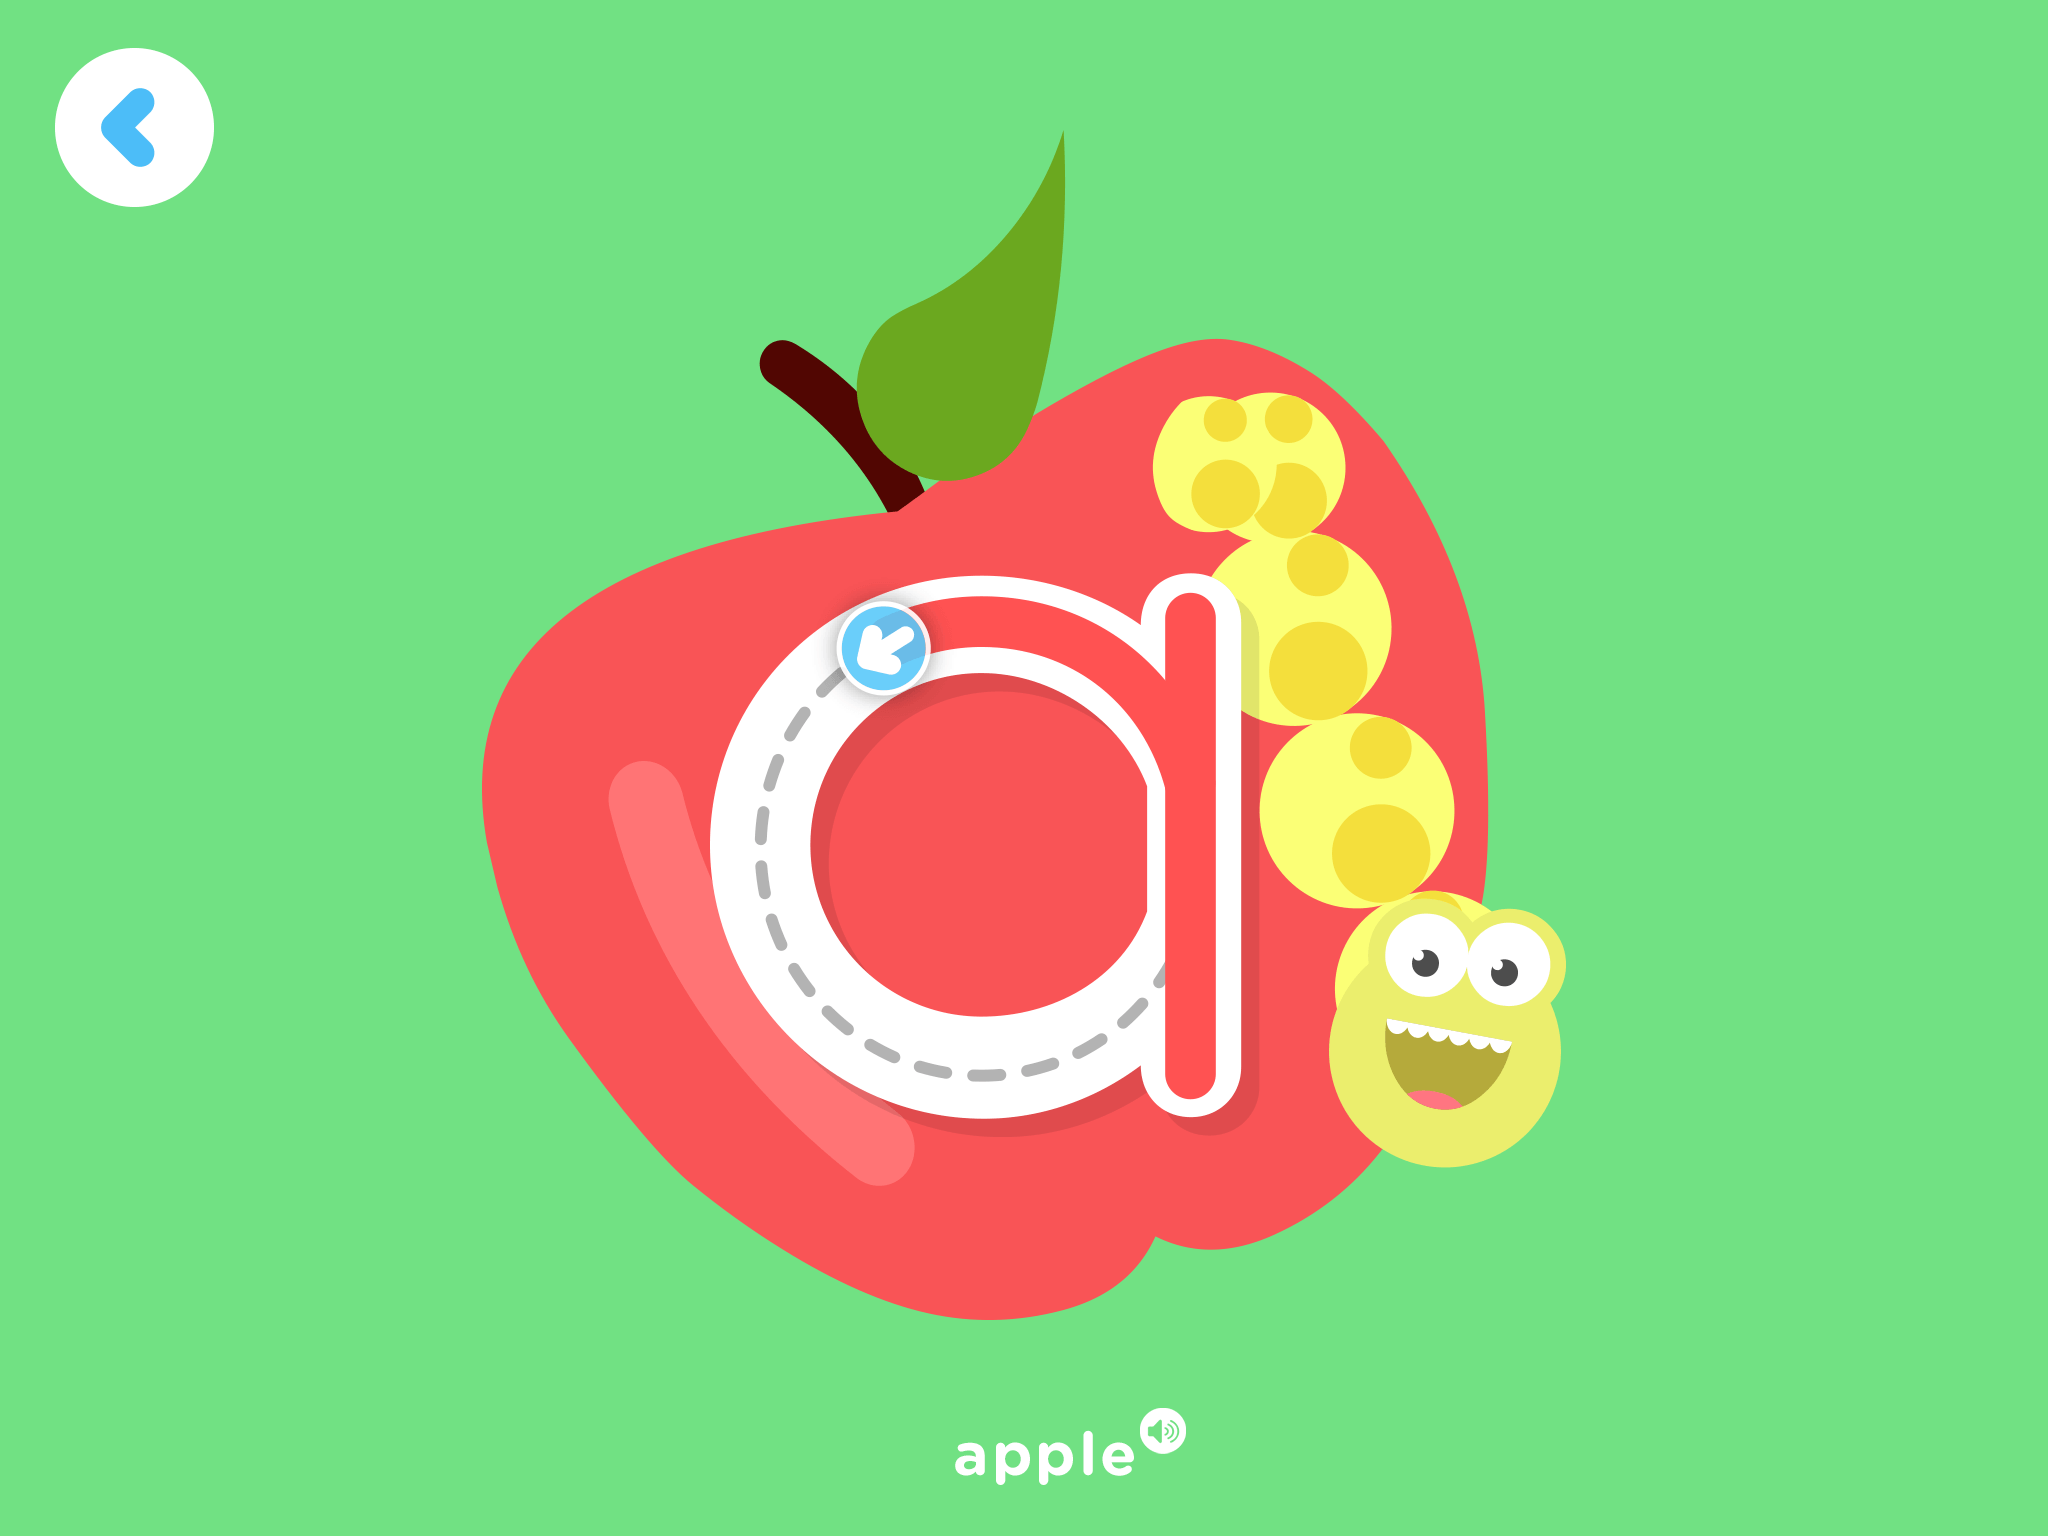 Fruits traceables - Activities to learn about fruits